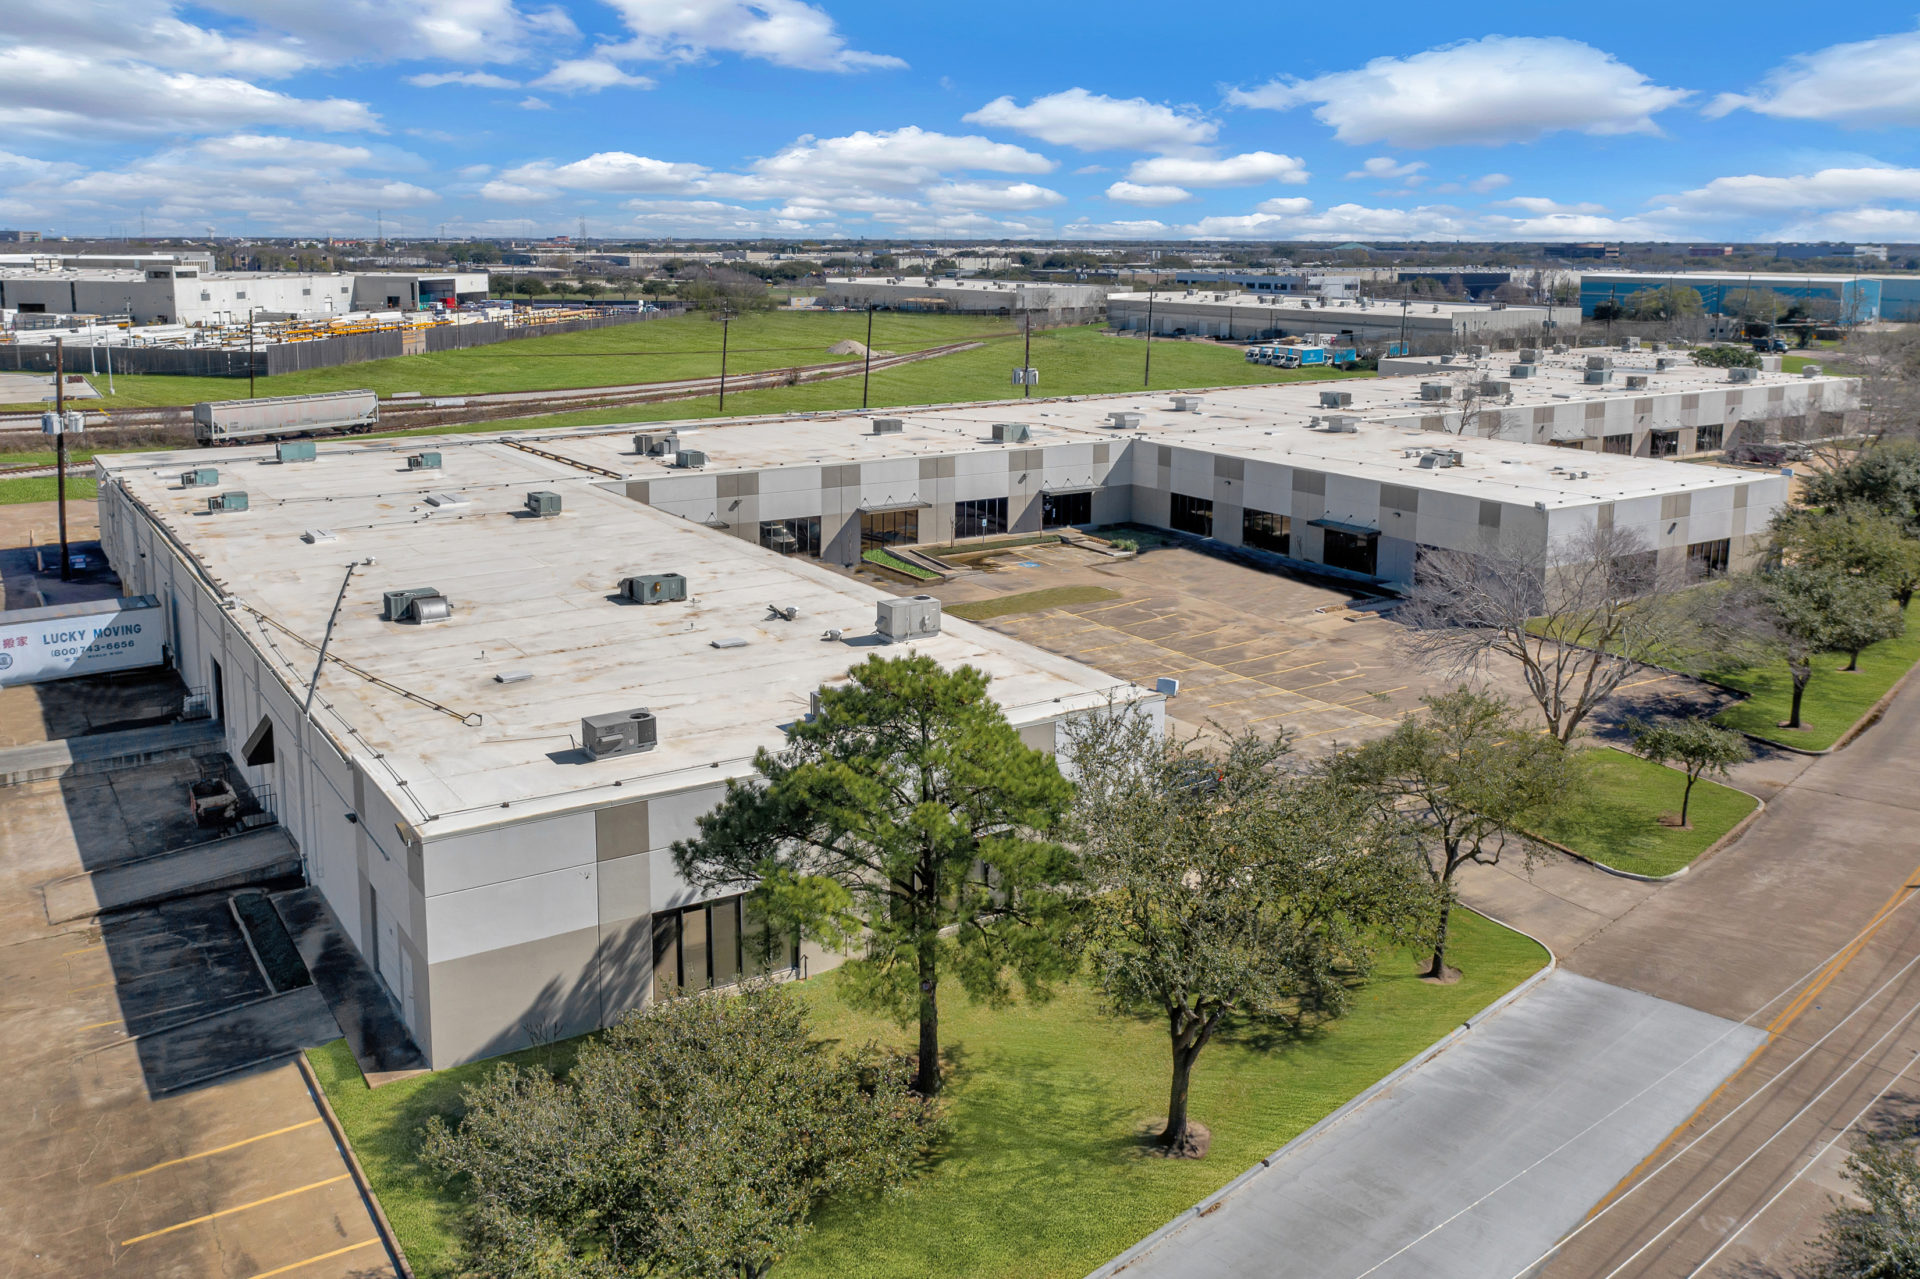 Aerial view of 700 Industrial Boulevard, an industrial property owned by Fort Capital and located in Sugar Land, TX